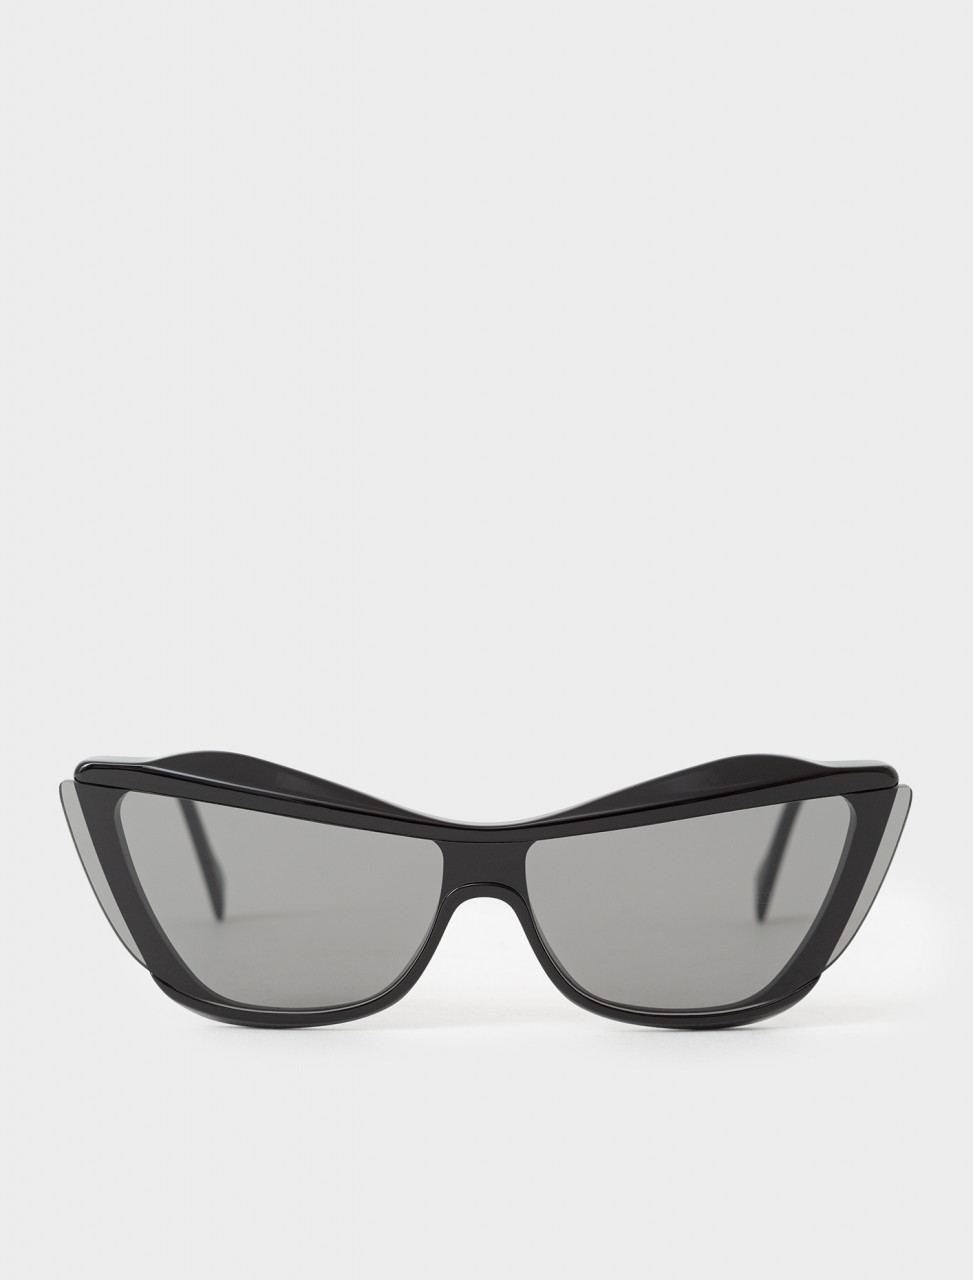 Gretl Cat-Eye Sunglasses in Black